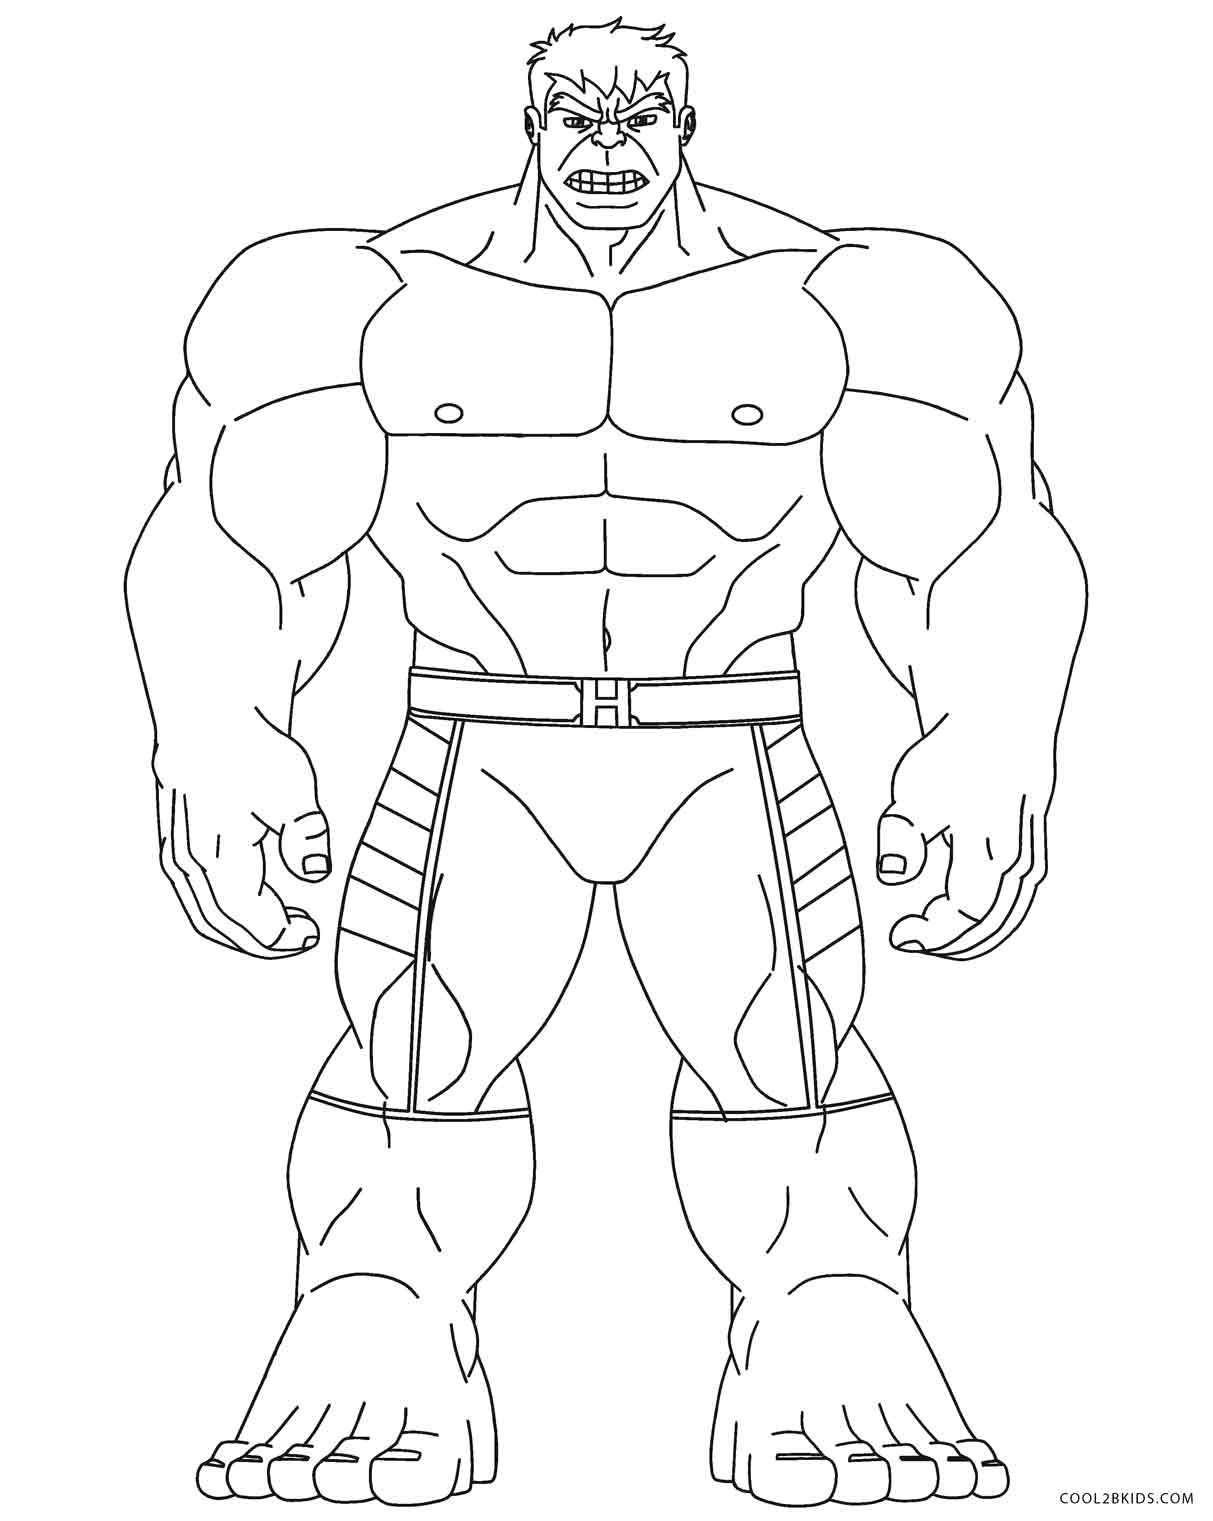 coloring pages incredible hulk - photo#4